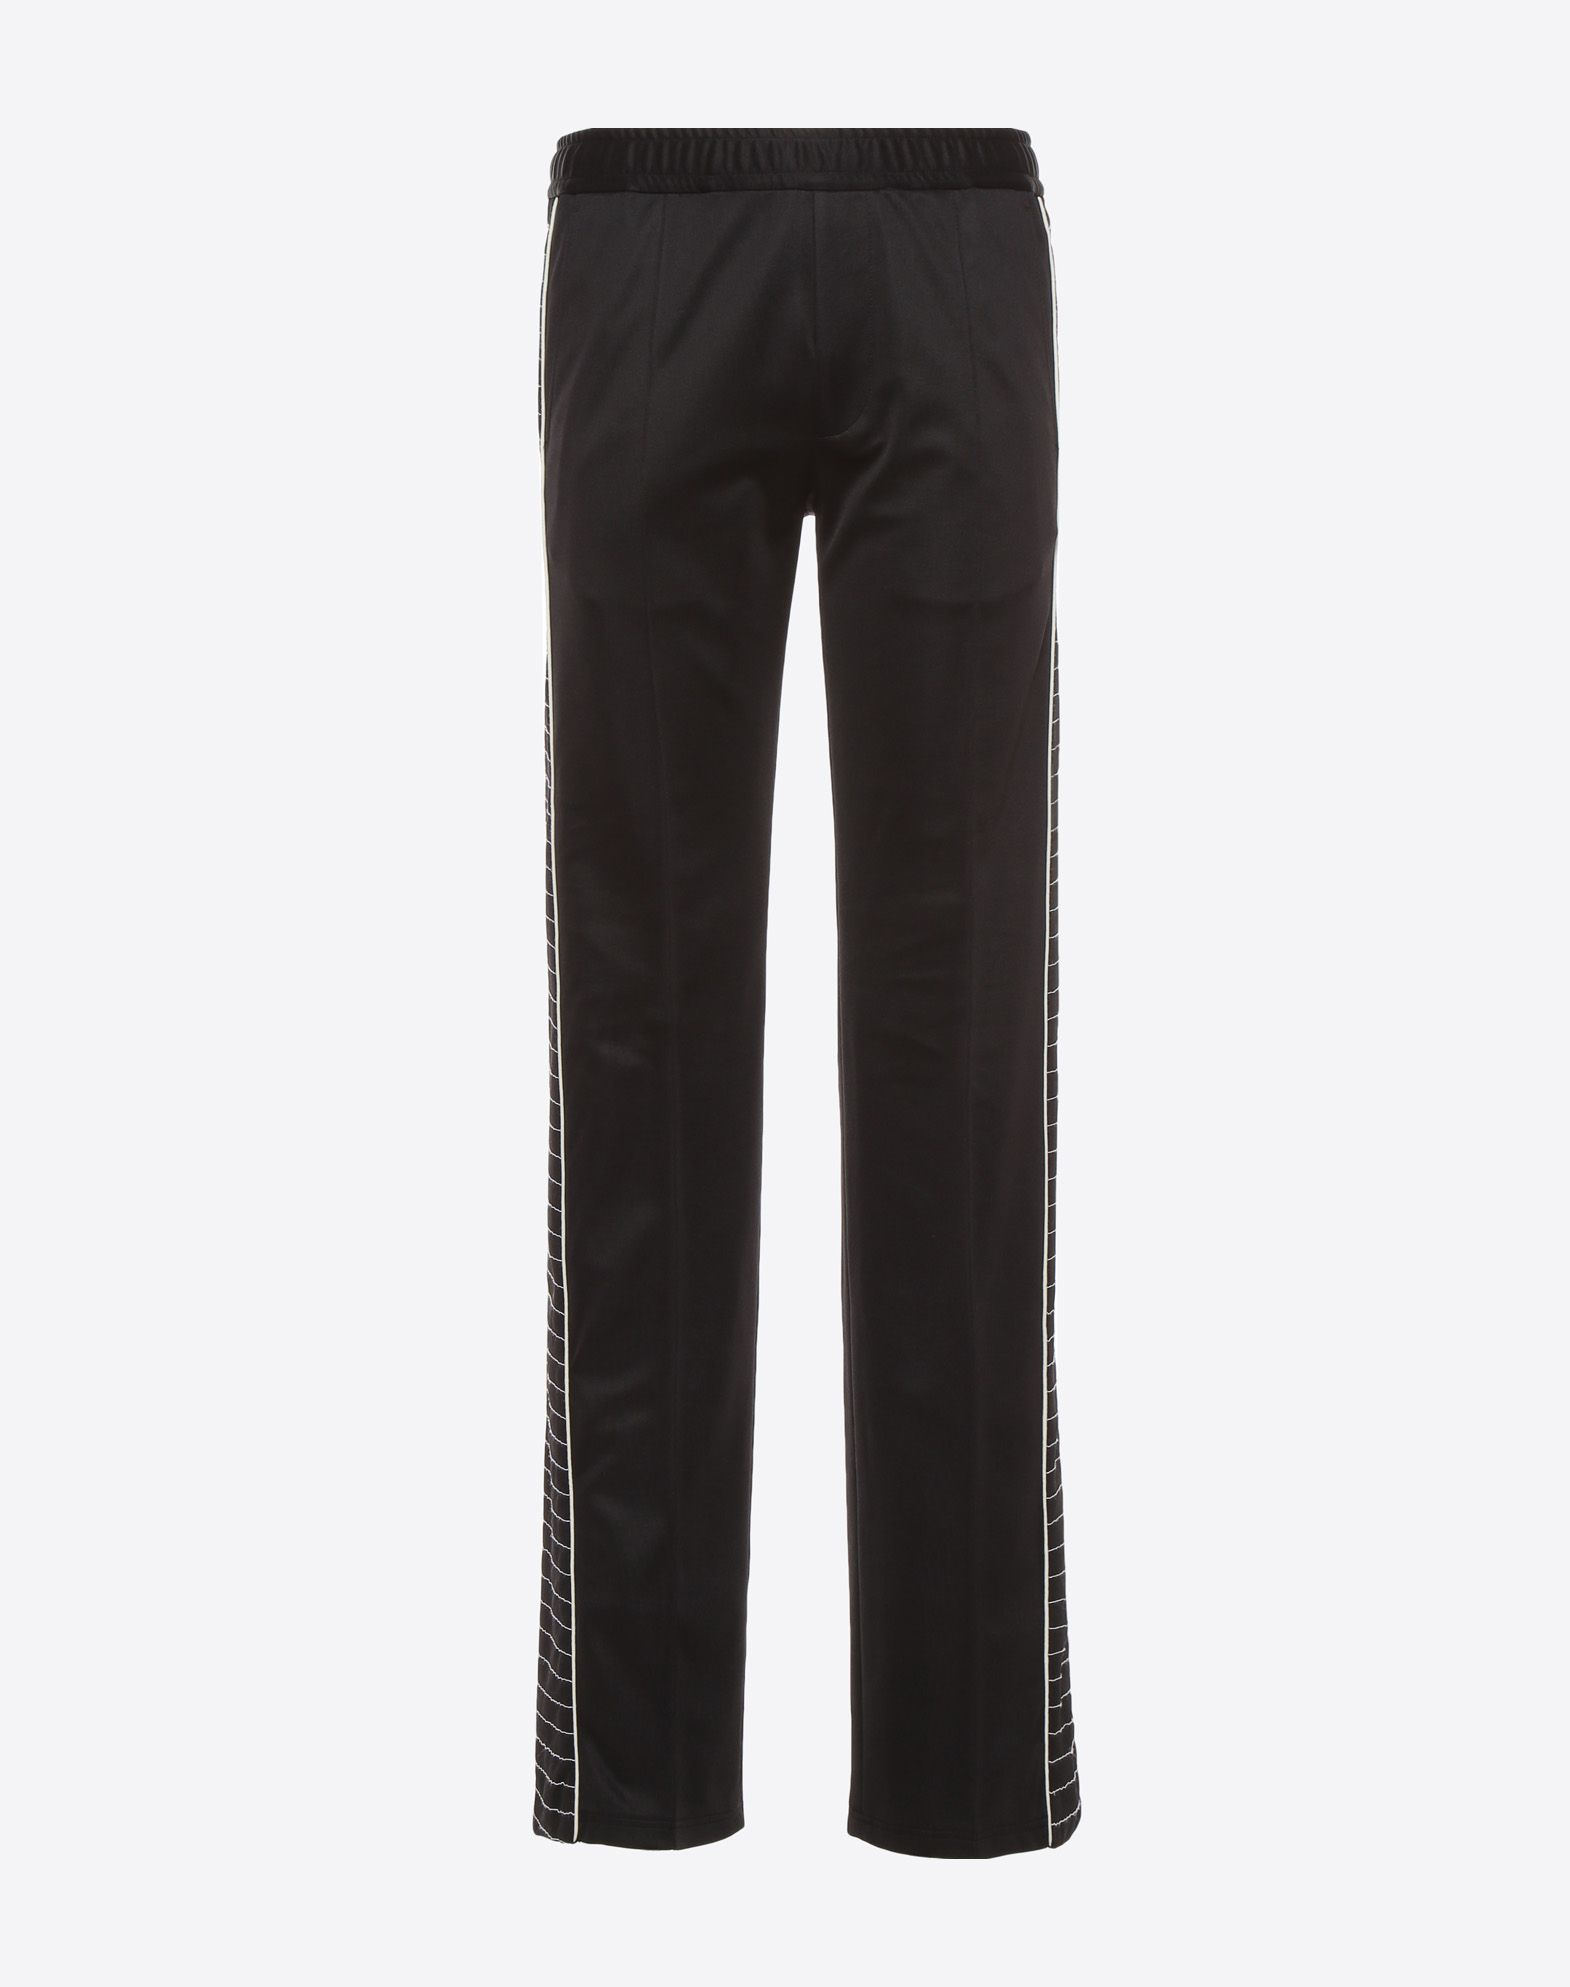 VALENTINO UOMO Trousers with embroidered bands Trousers U f